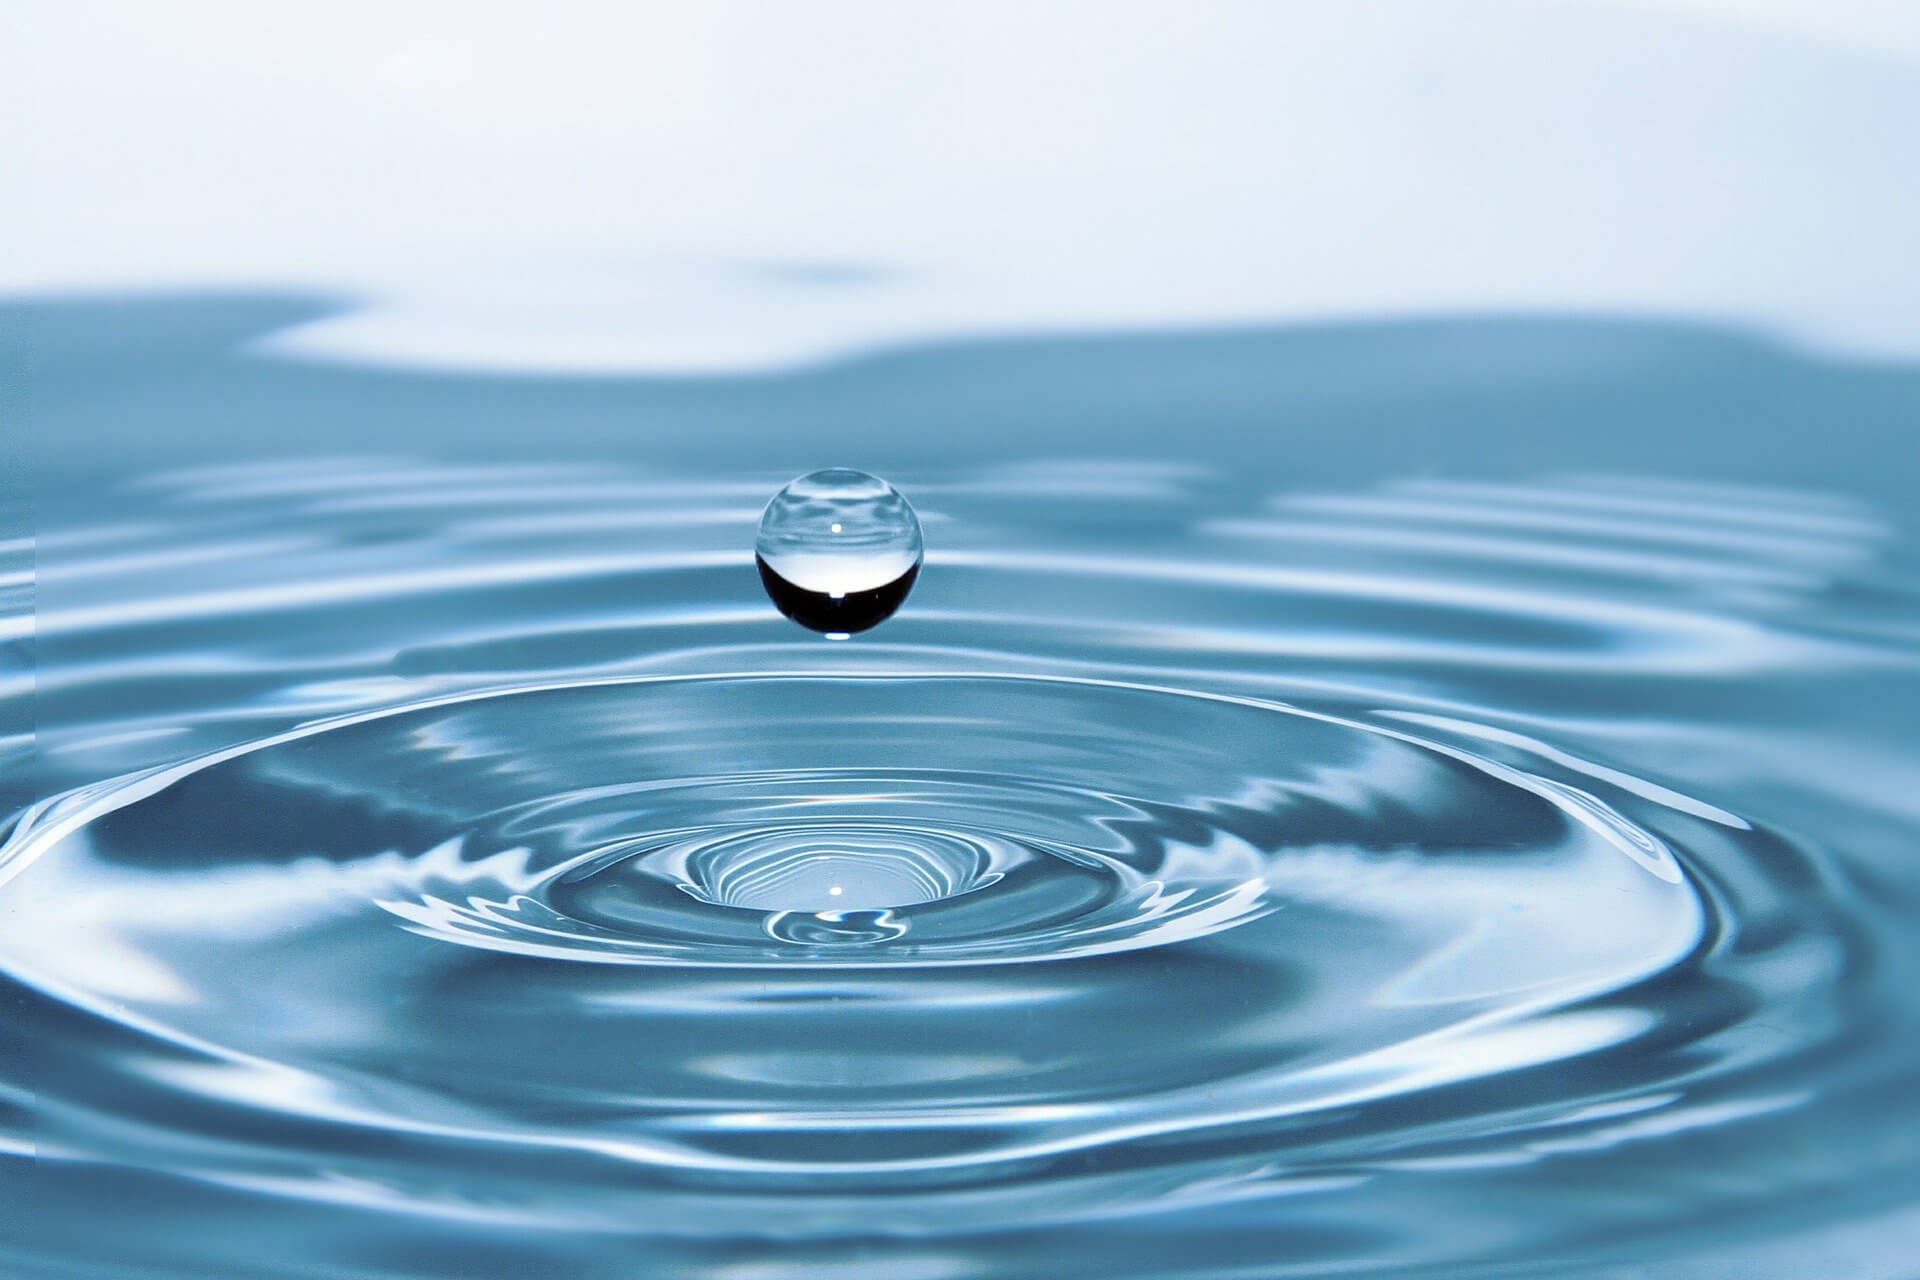 Adding micronutrients to your water can improve your wellbeing